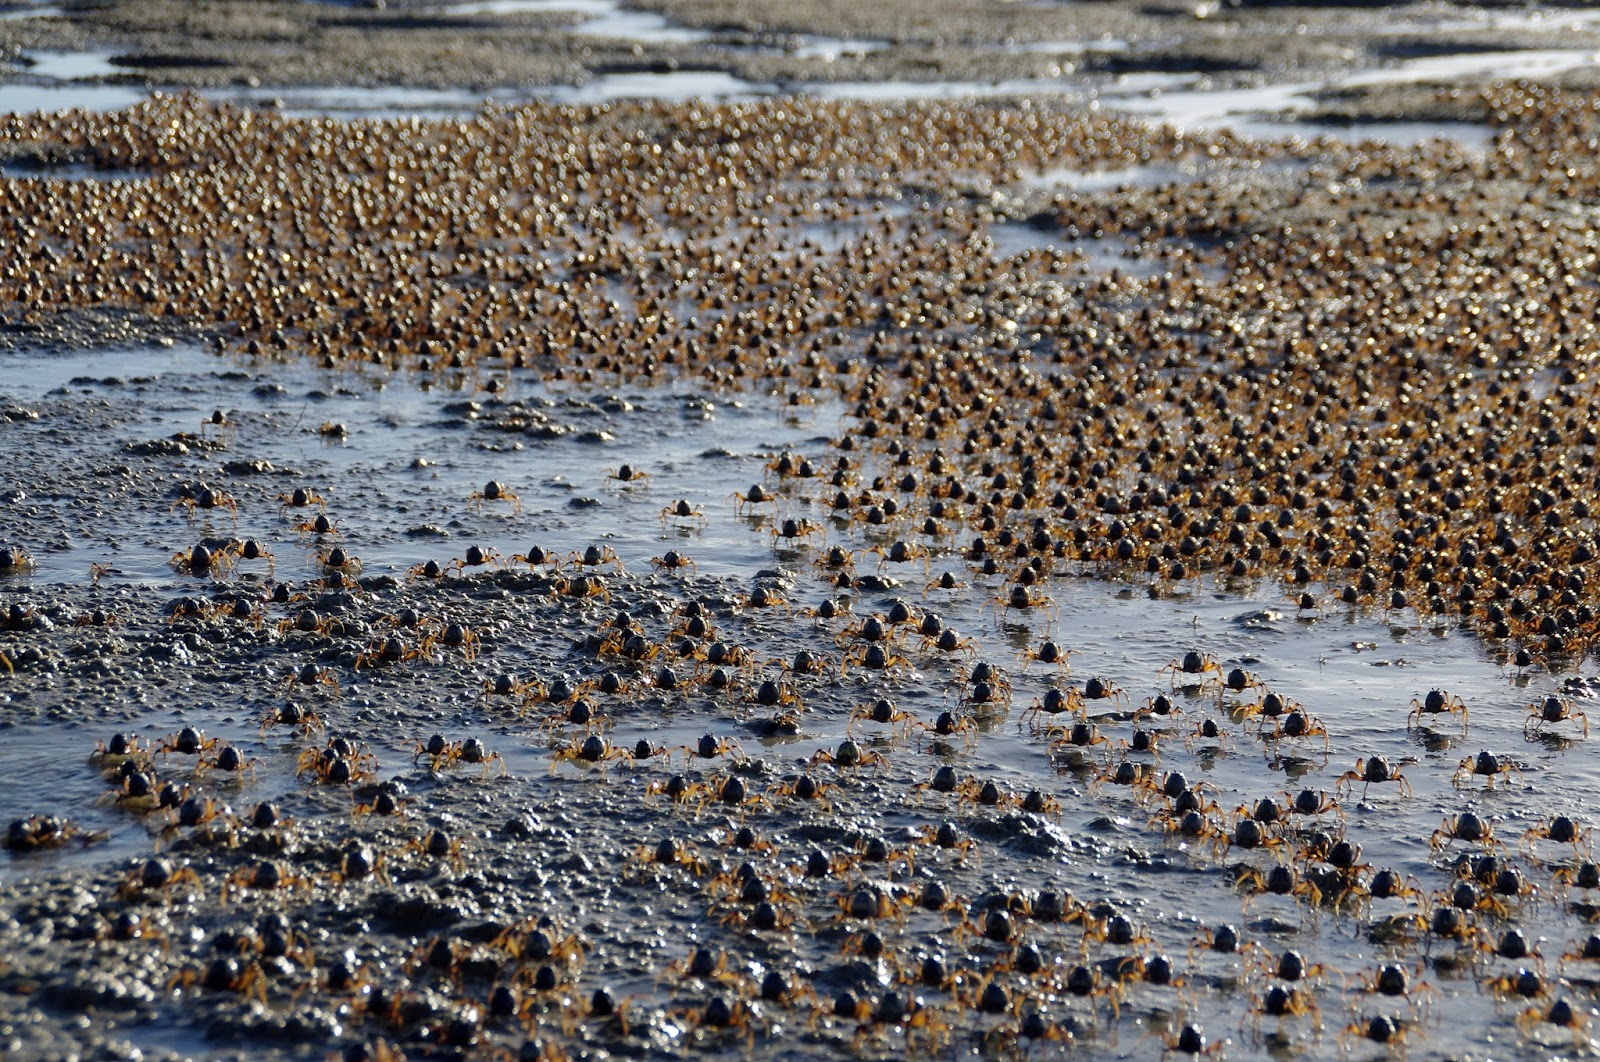 Thousands of crabs on Dunwich Beach Stradbroke Island